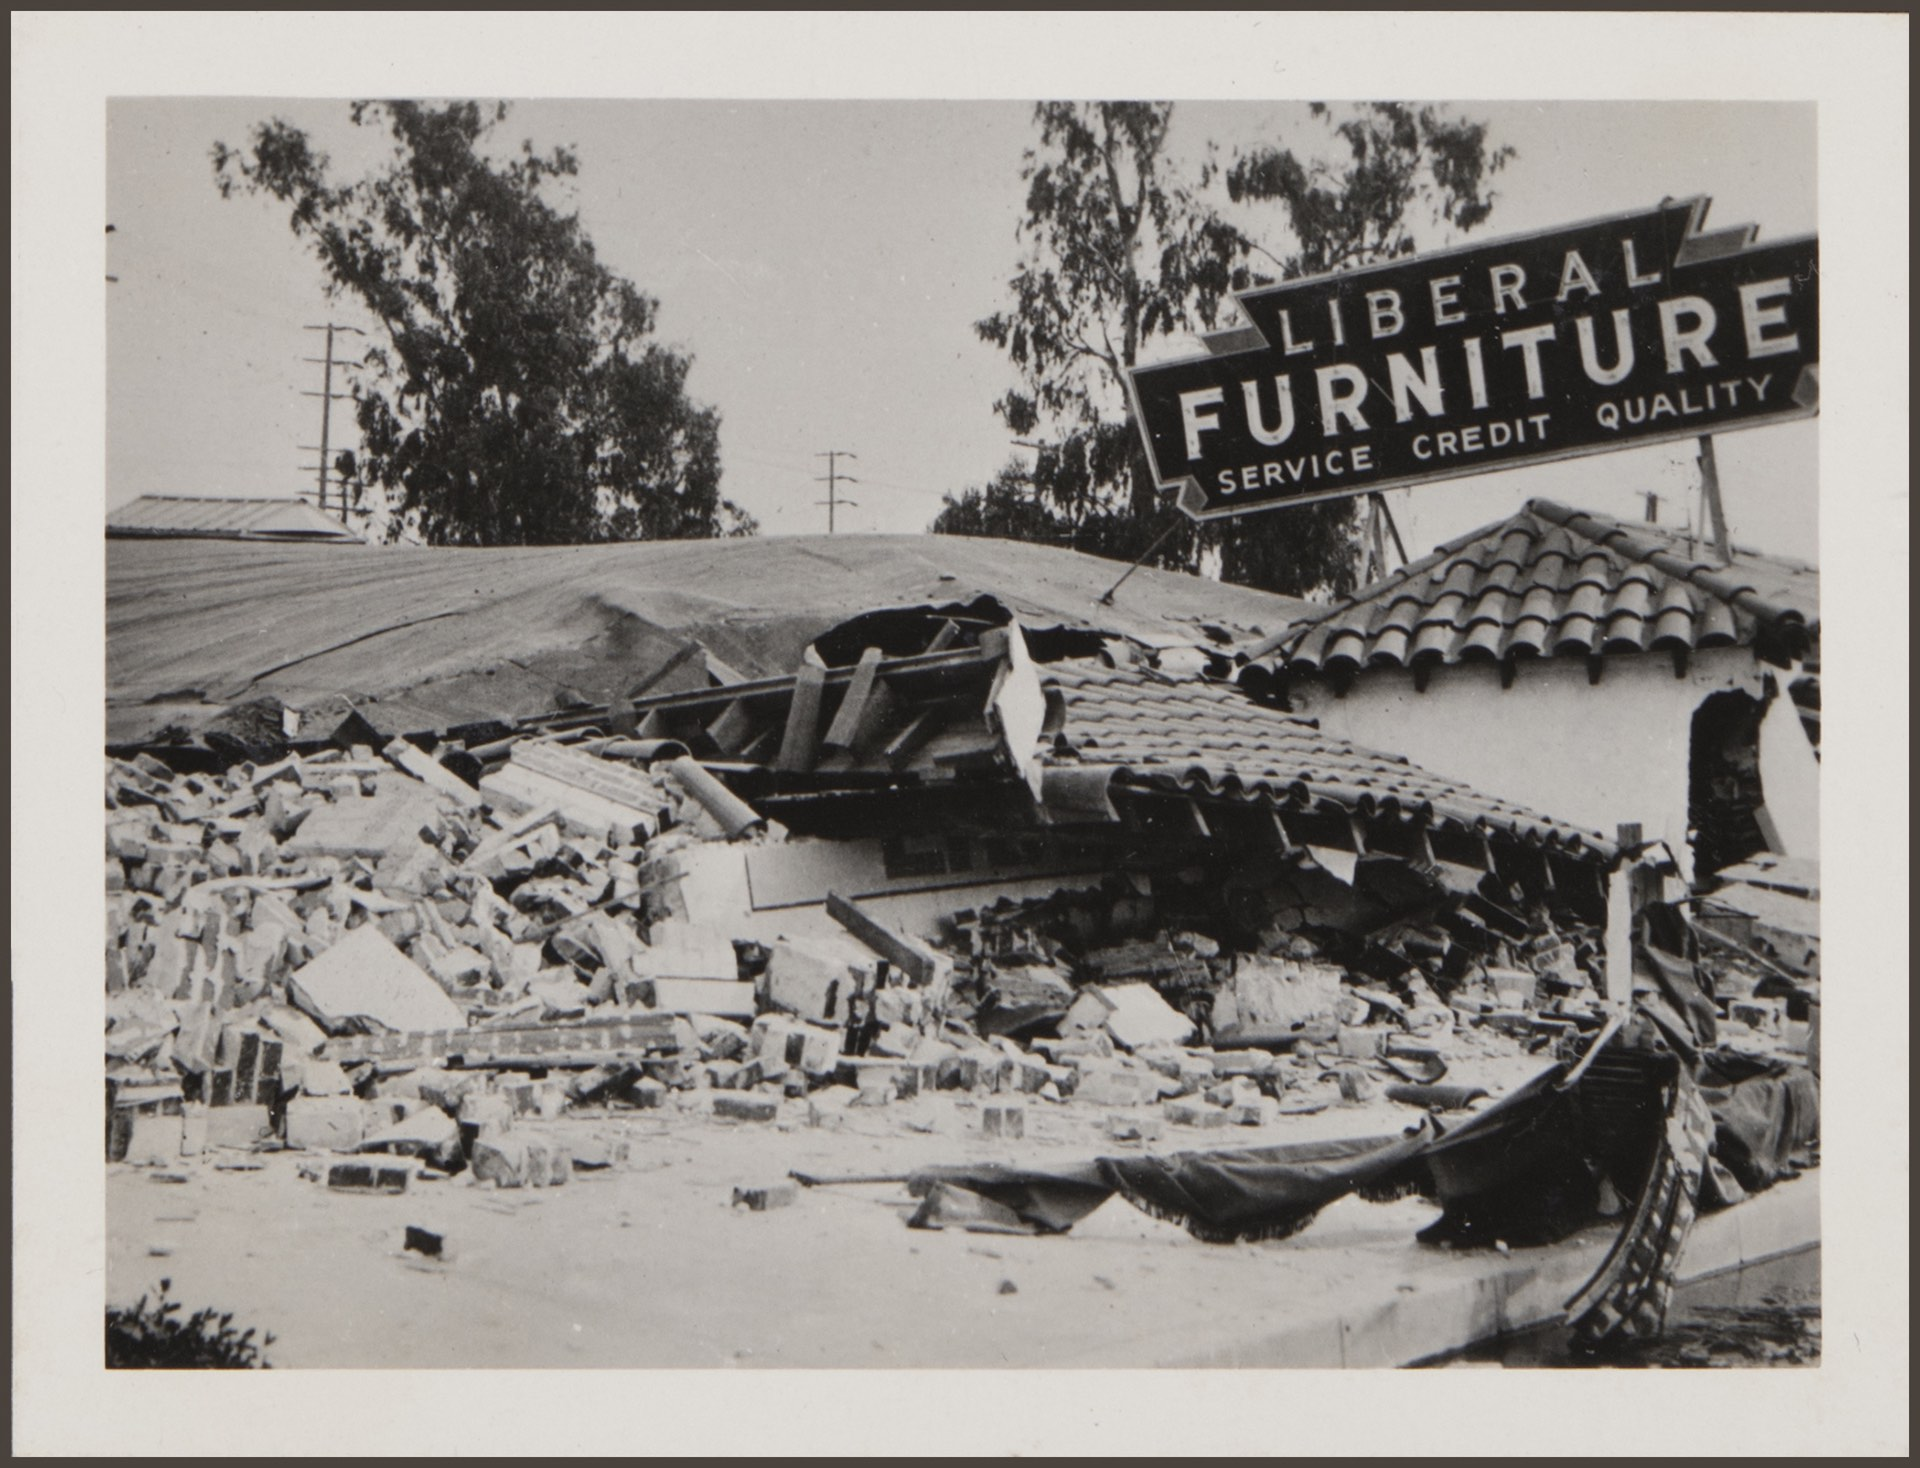 Compton. Los Angeles: 1932-33 by Anton Wagner, PC 17, California Historical Society.